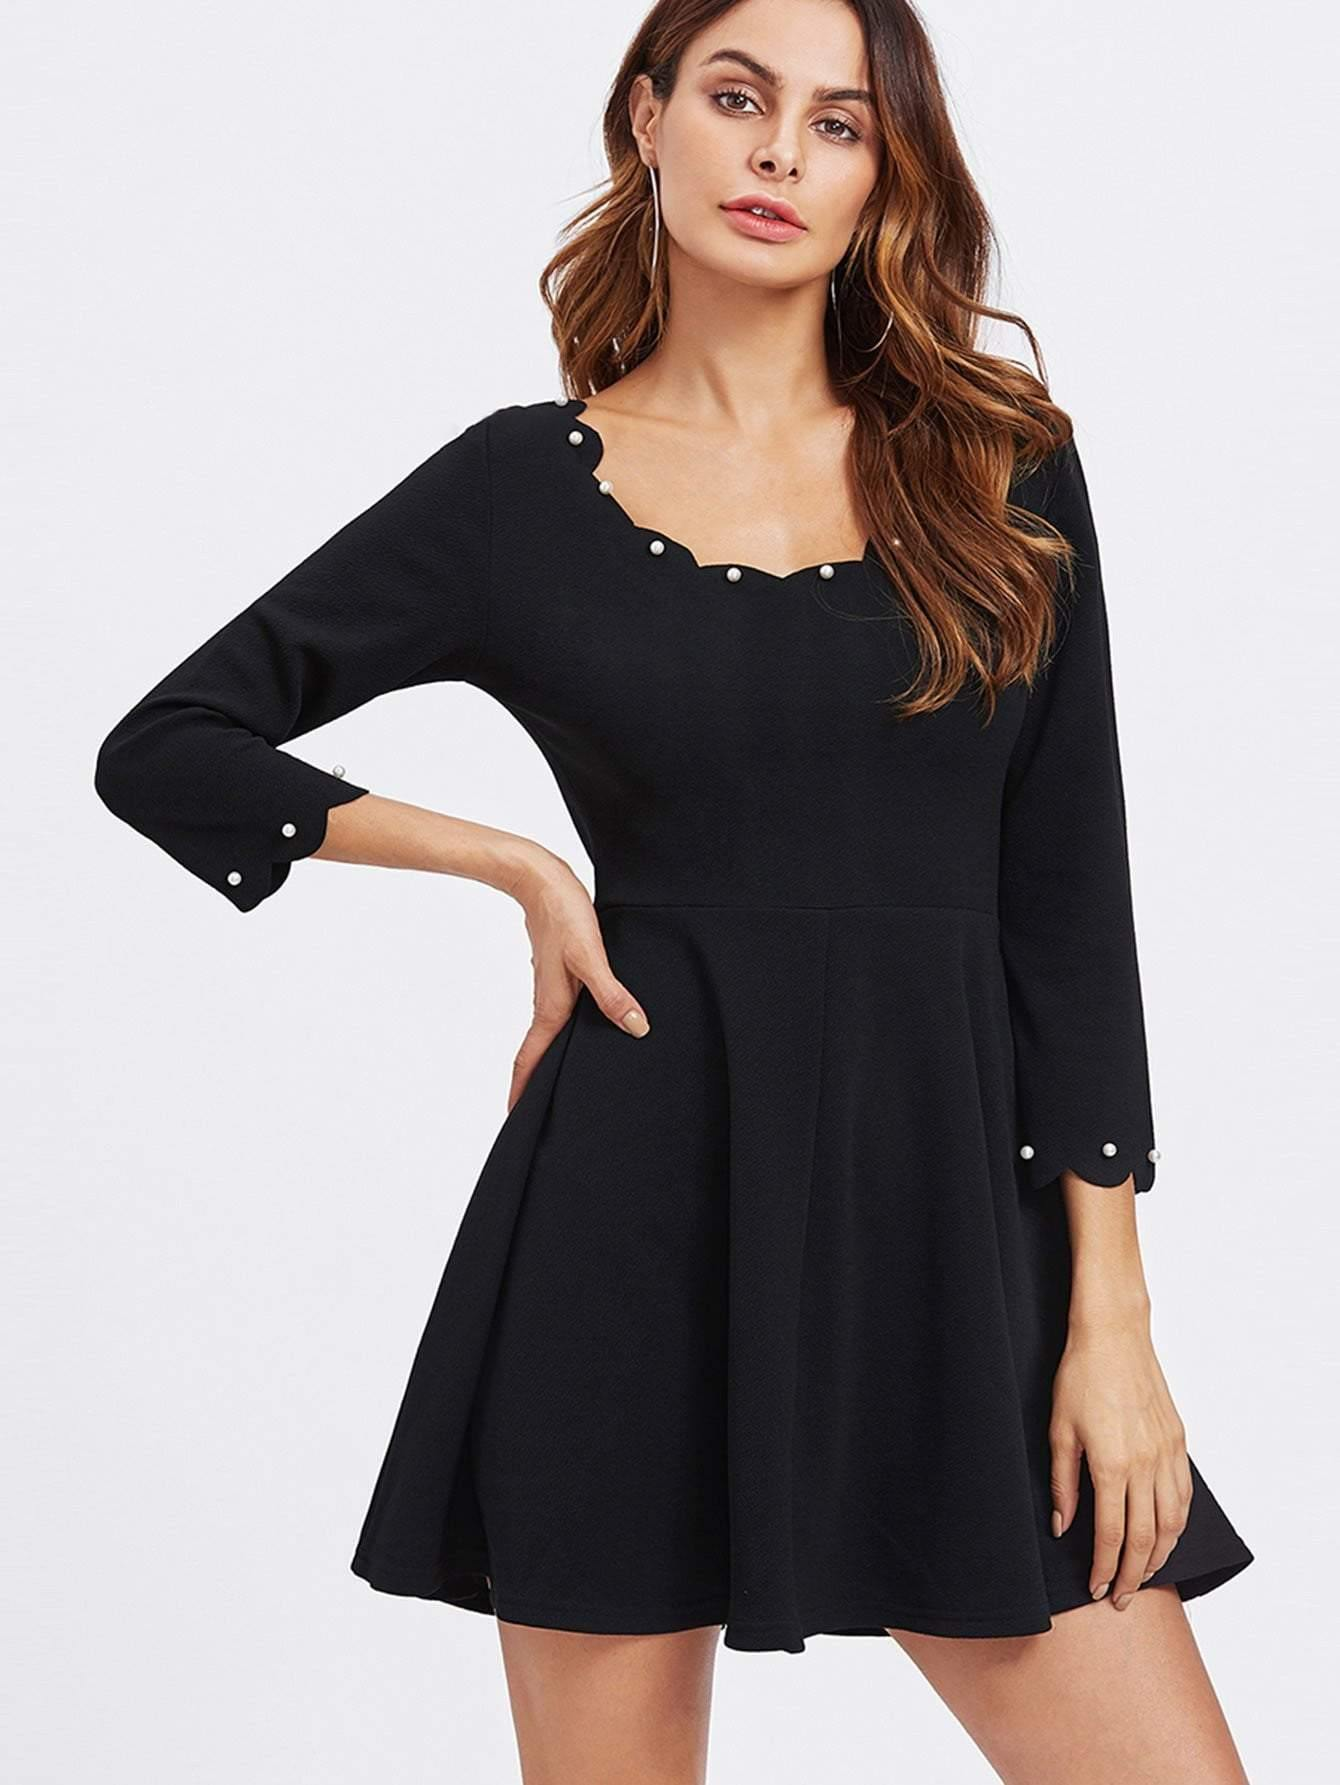 Pearl Detail Scalloped Swing Dress - Dresses - Zooomberg - Zoomberg